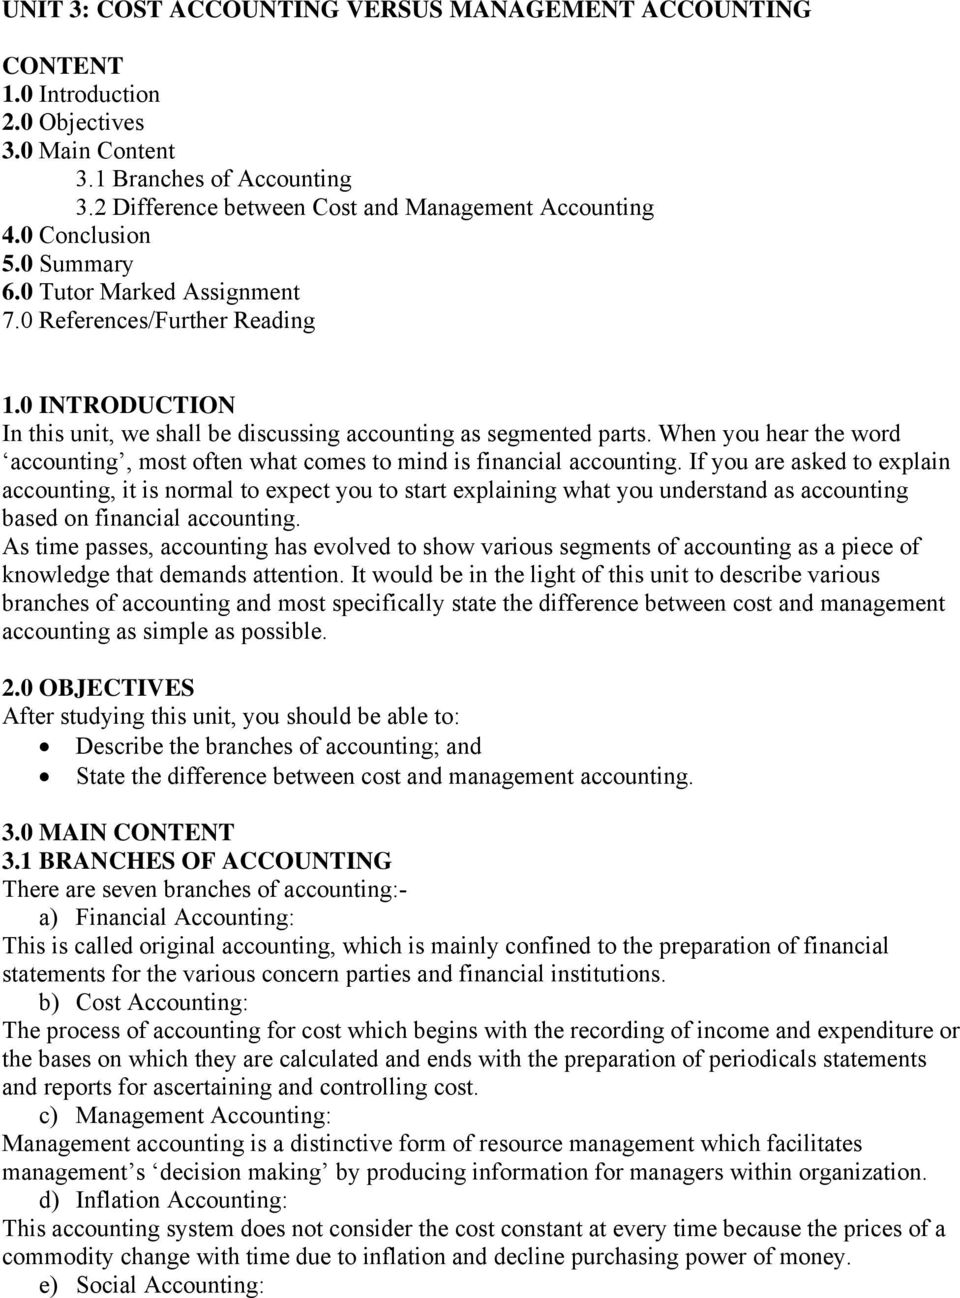 Business Management Essays Essay About Family Tradition First Class Business Law Essay Questions also Example Thesis Statements For Essays About Depression Essay Corruption In Hindi Research Paper Essay